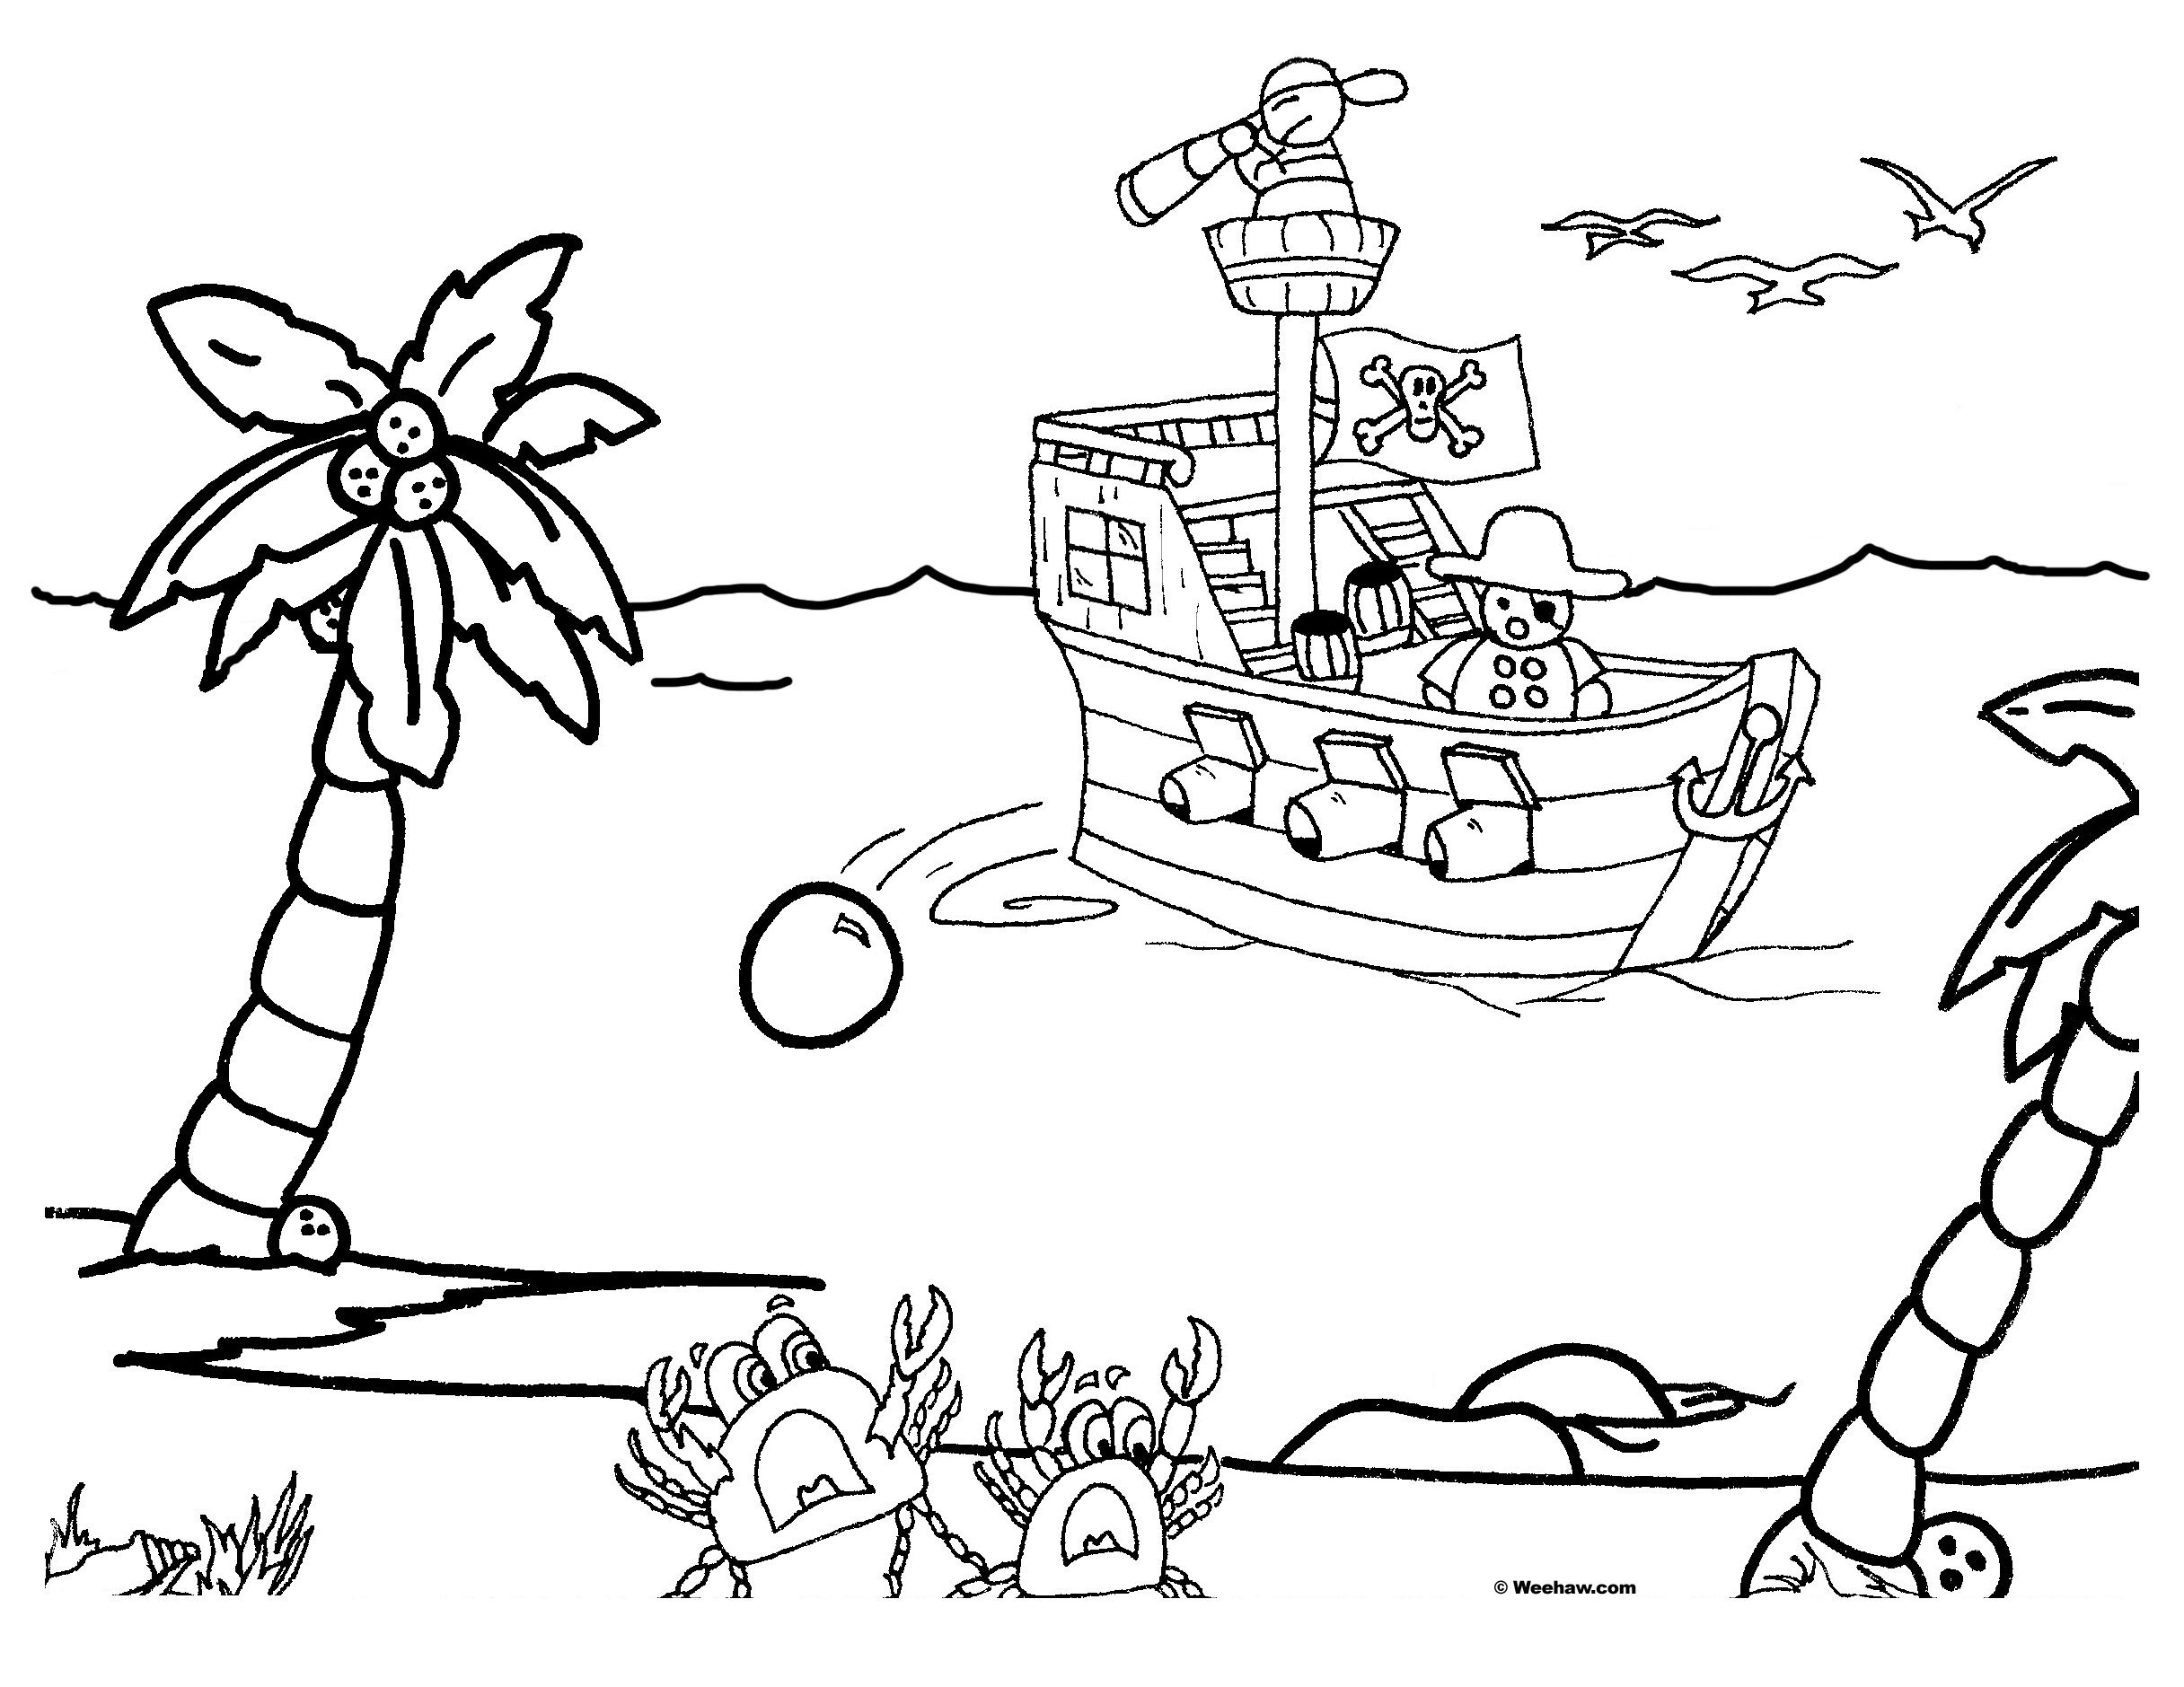 Pirate Ship Coloring Pages Pirate Coloring Pages Coloring Pages